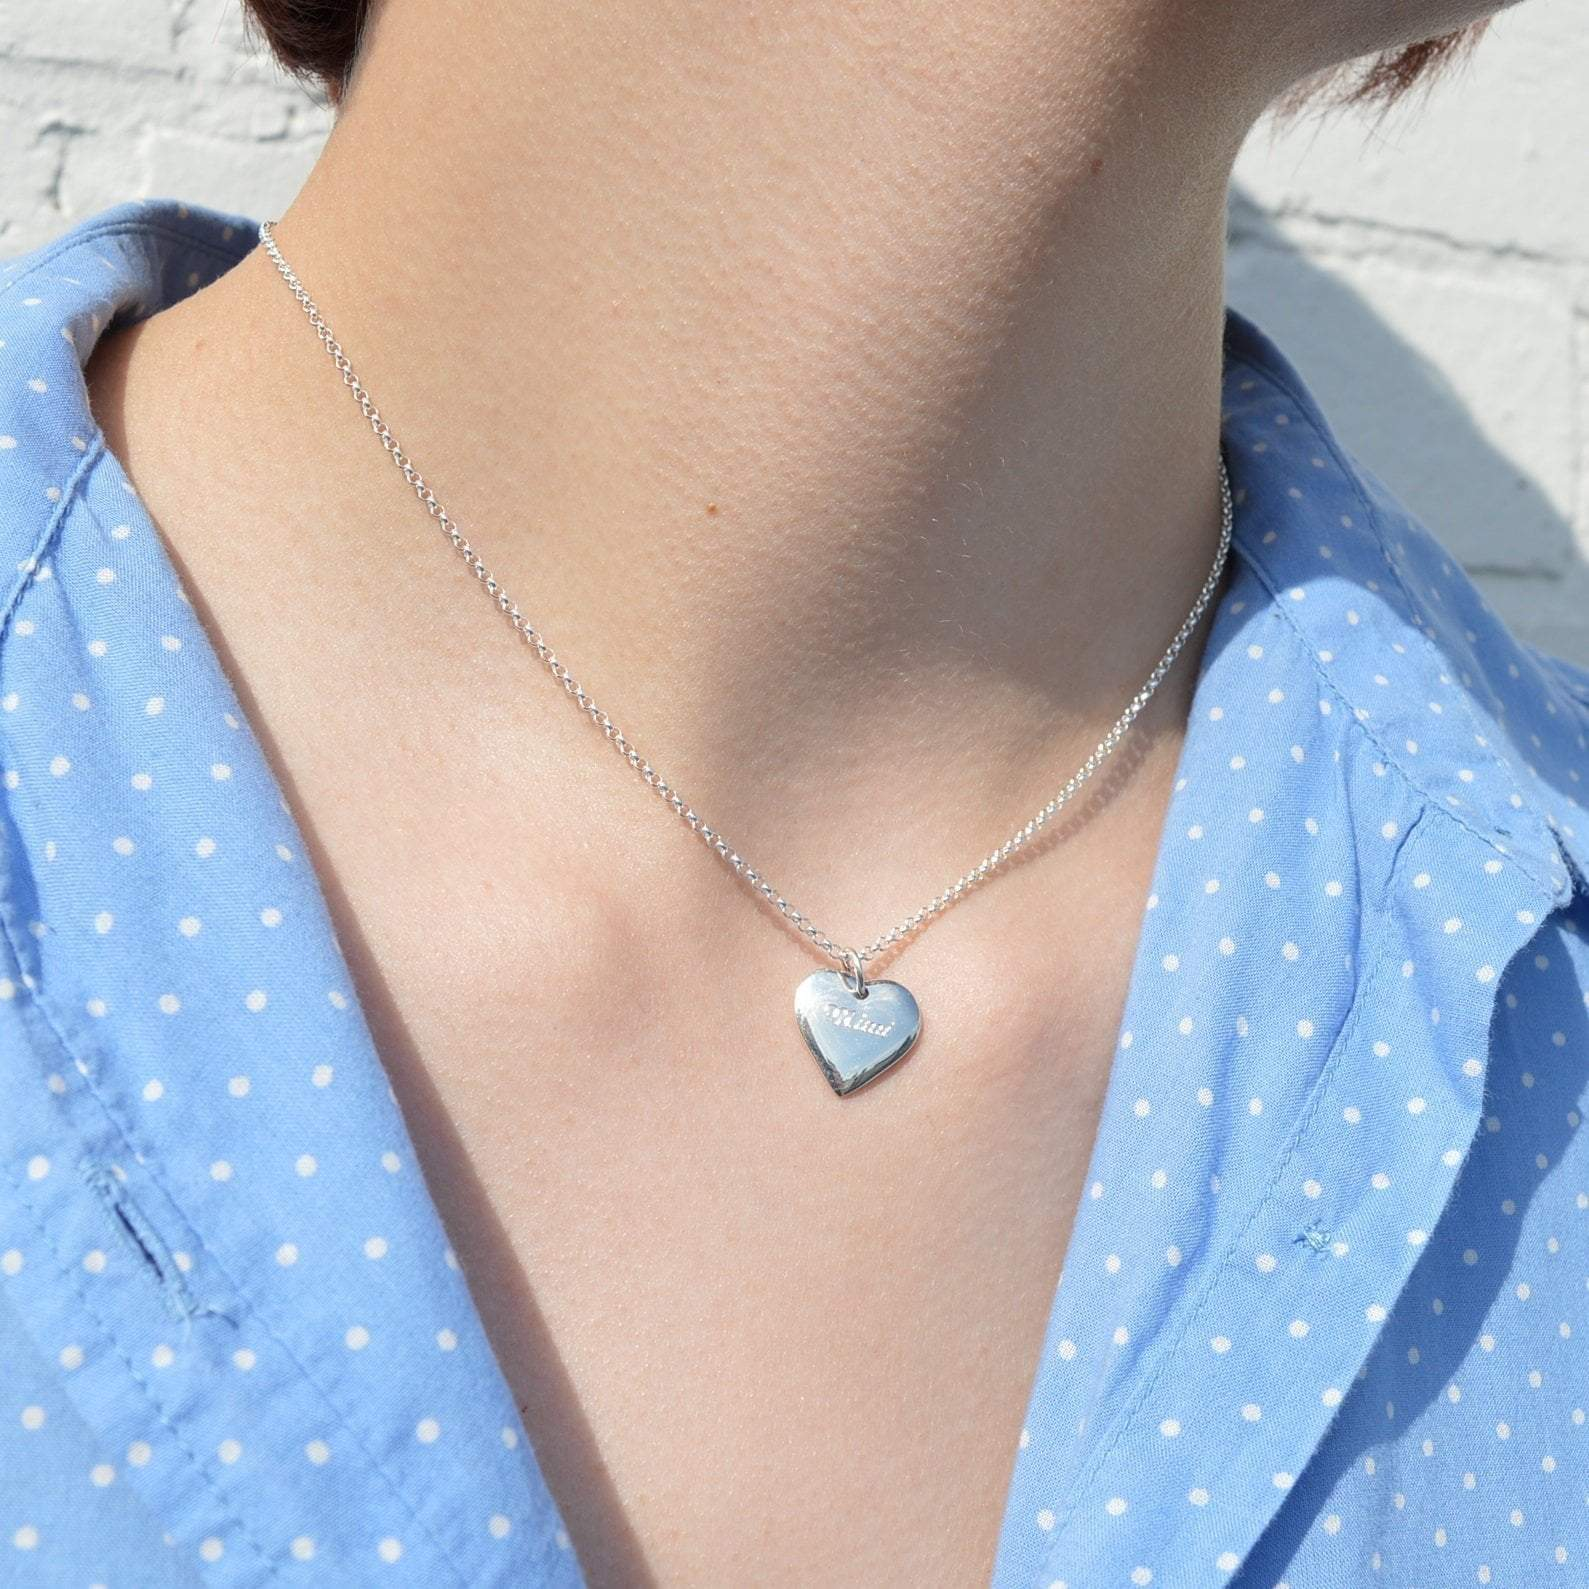 Engraved Silver Heart Necklace (Medium) - Lily Charmed